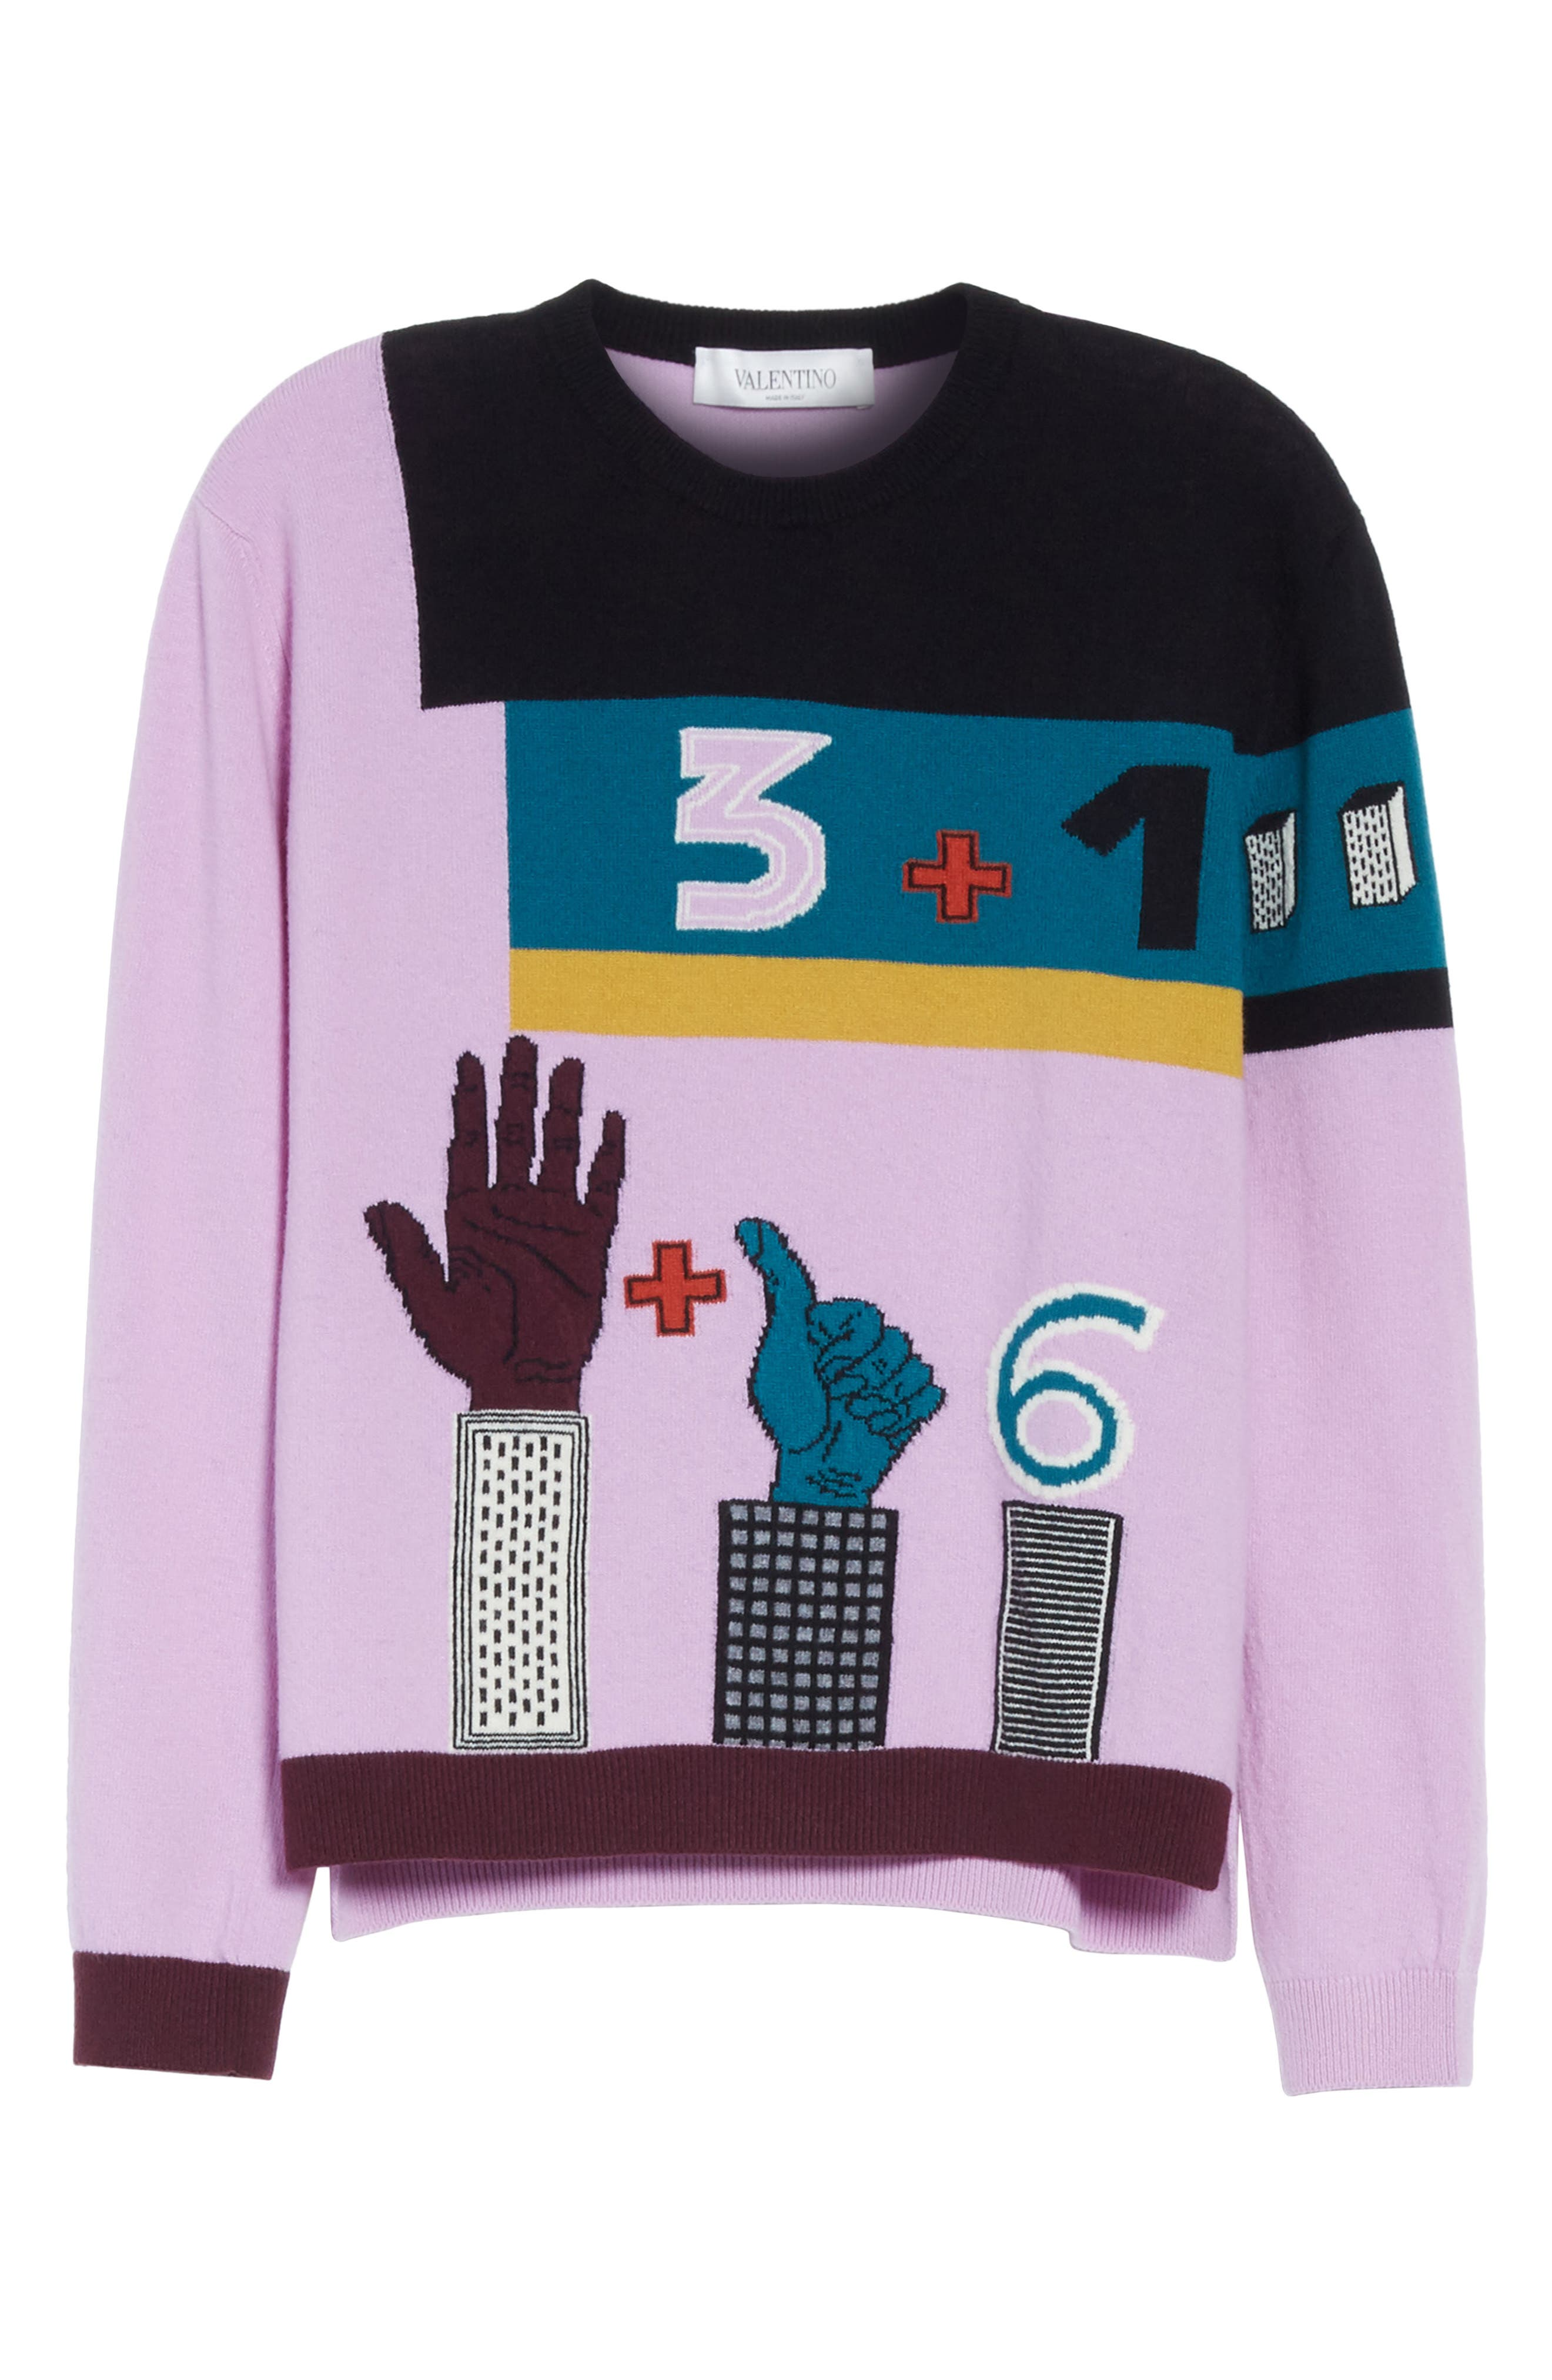 Counting Number 6 Intarsia Wool & Cashmere Sweater,                             Alternate thumbnail 6, color,                             500